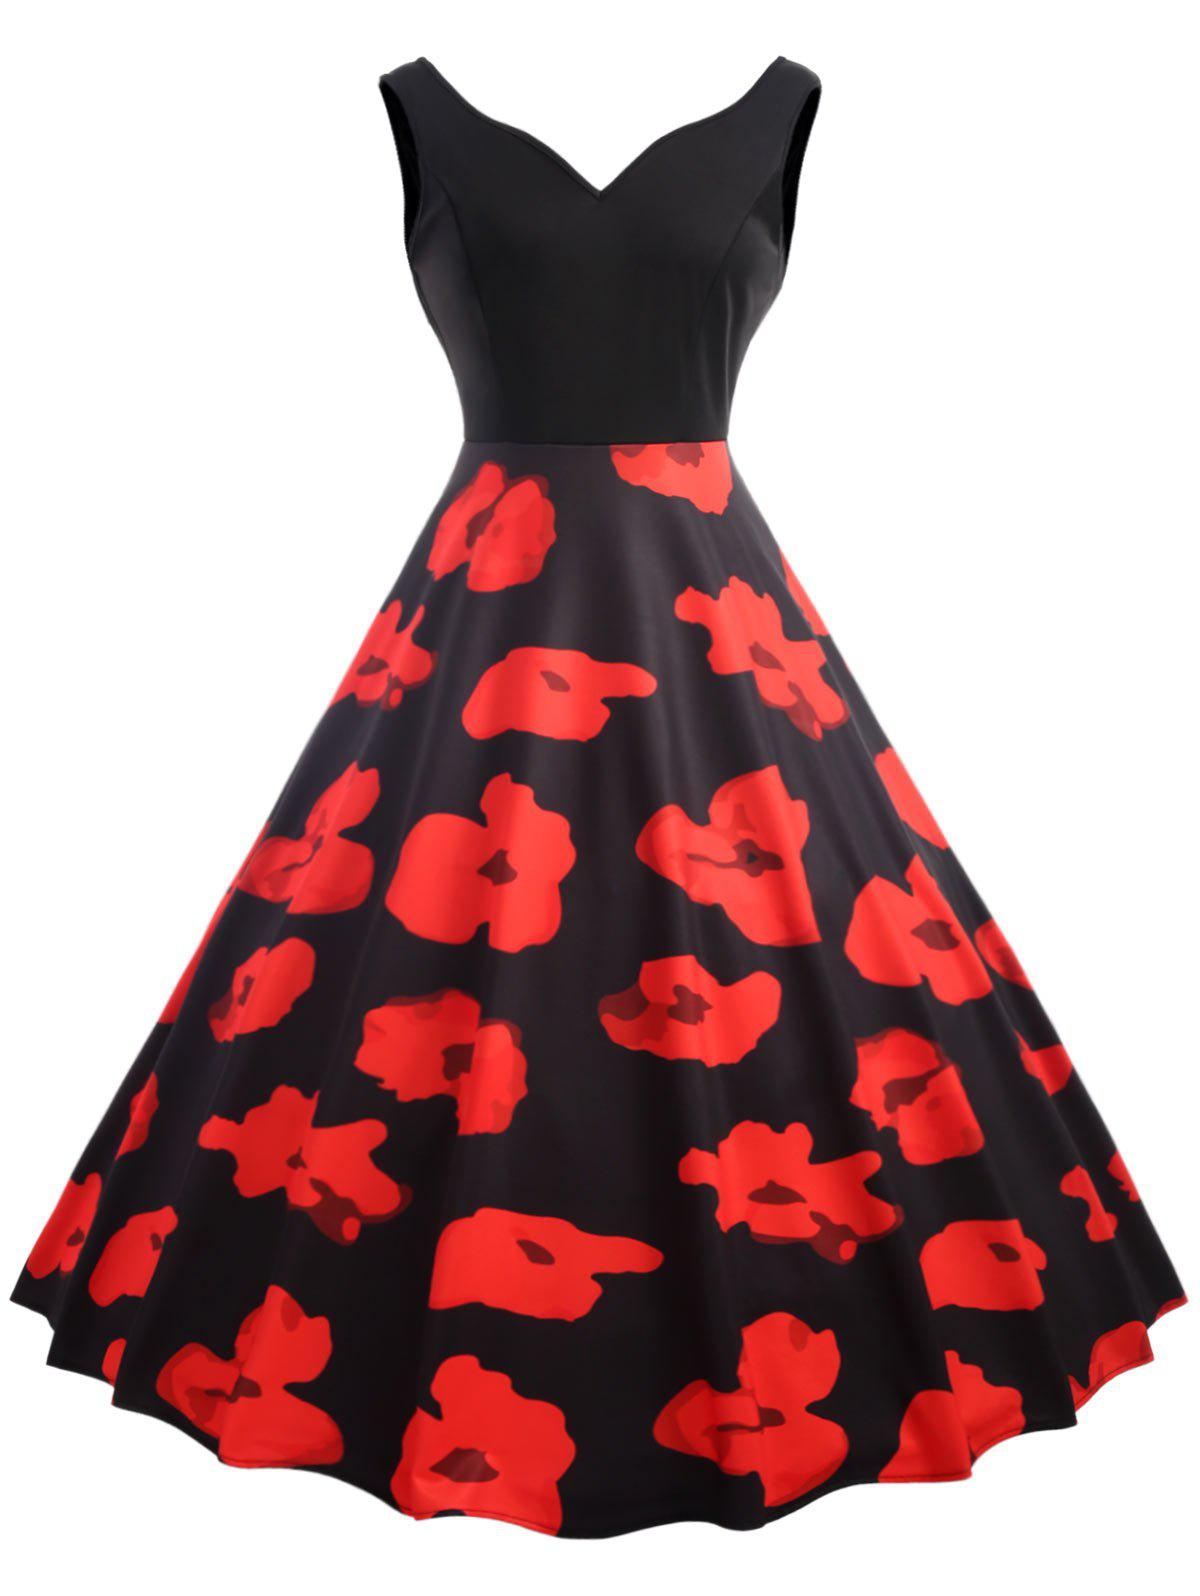 Retro Floral Fit and Flare Party Dress sleeveless floral print fit and flare dress